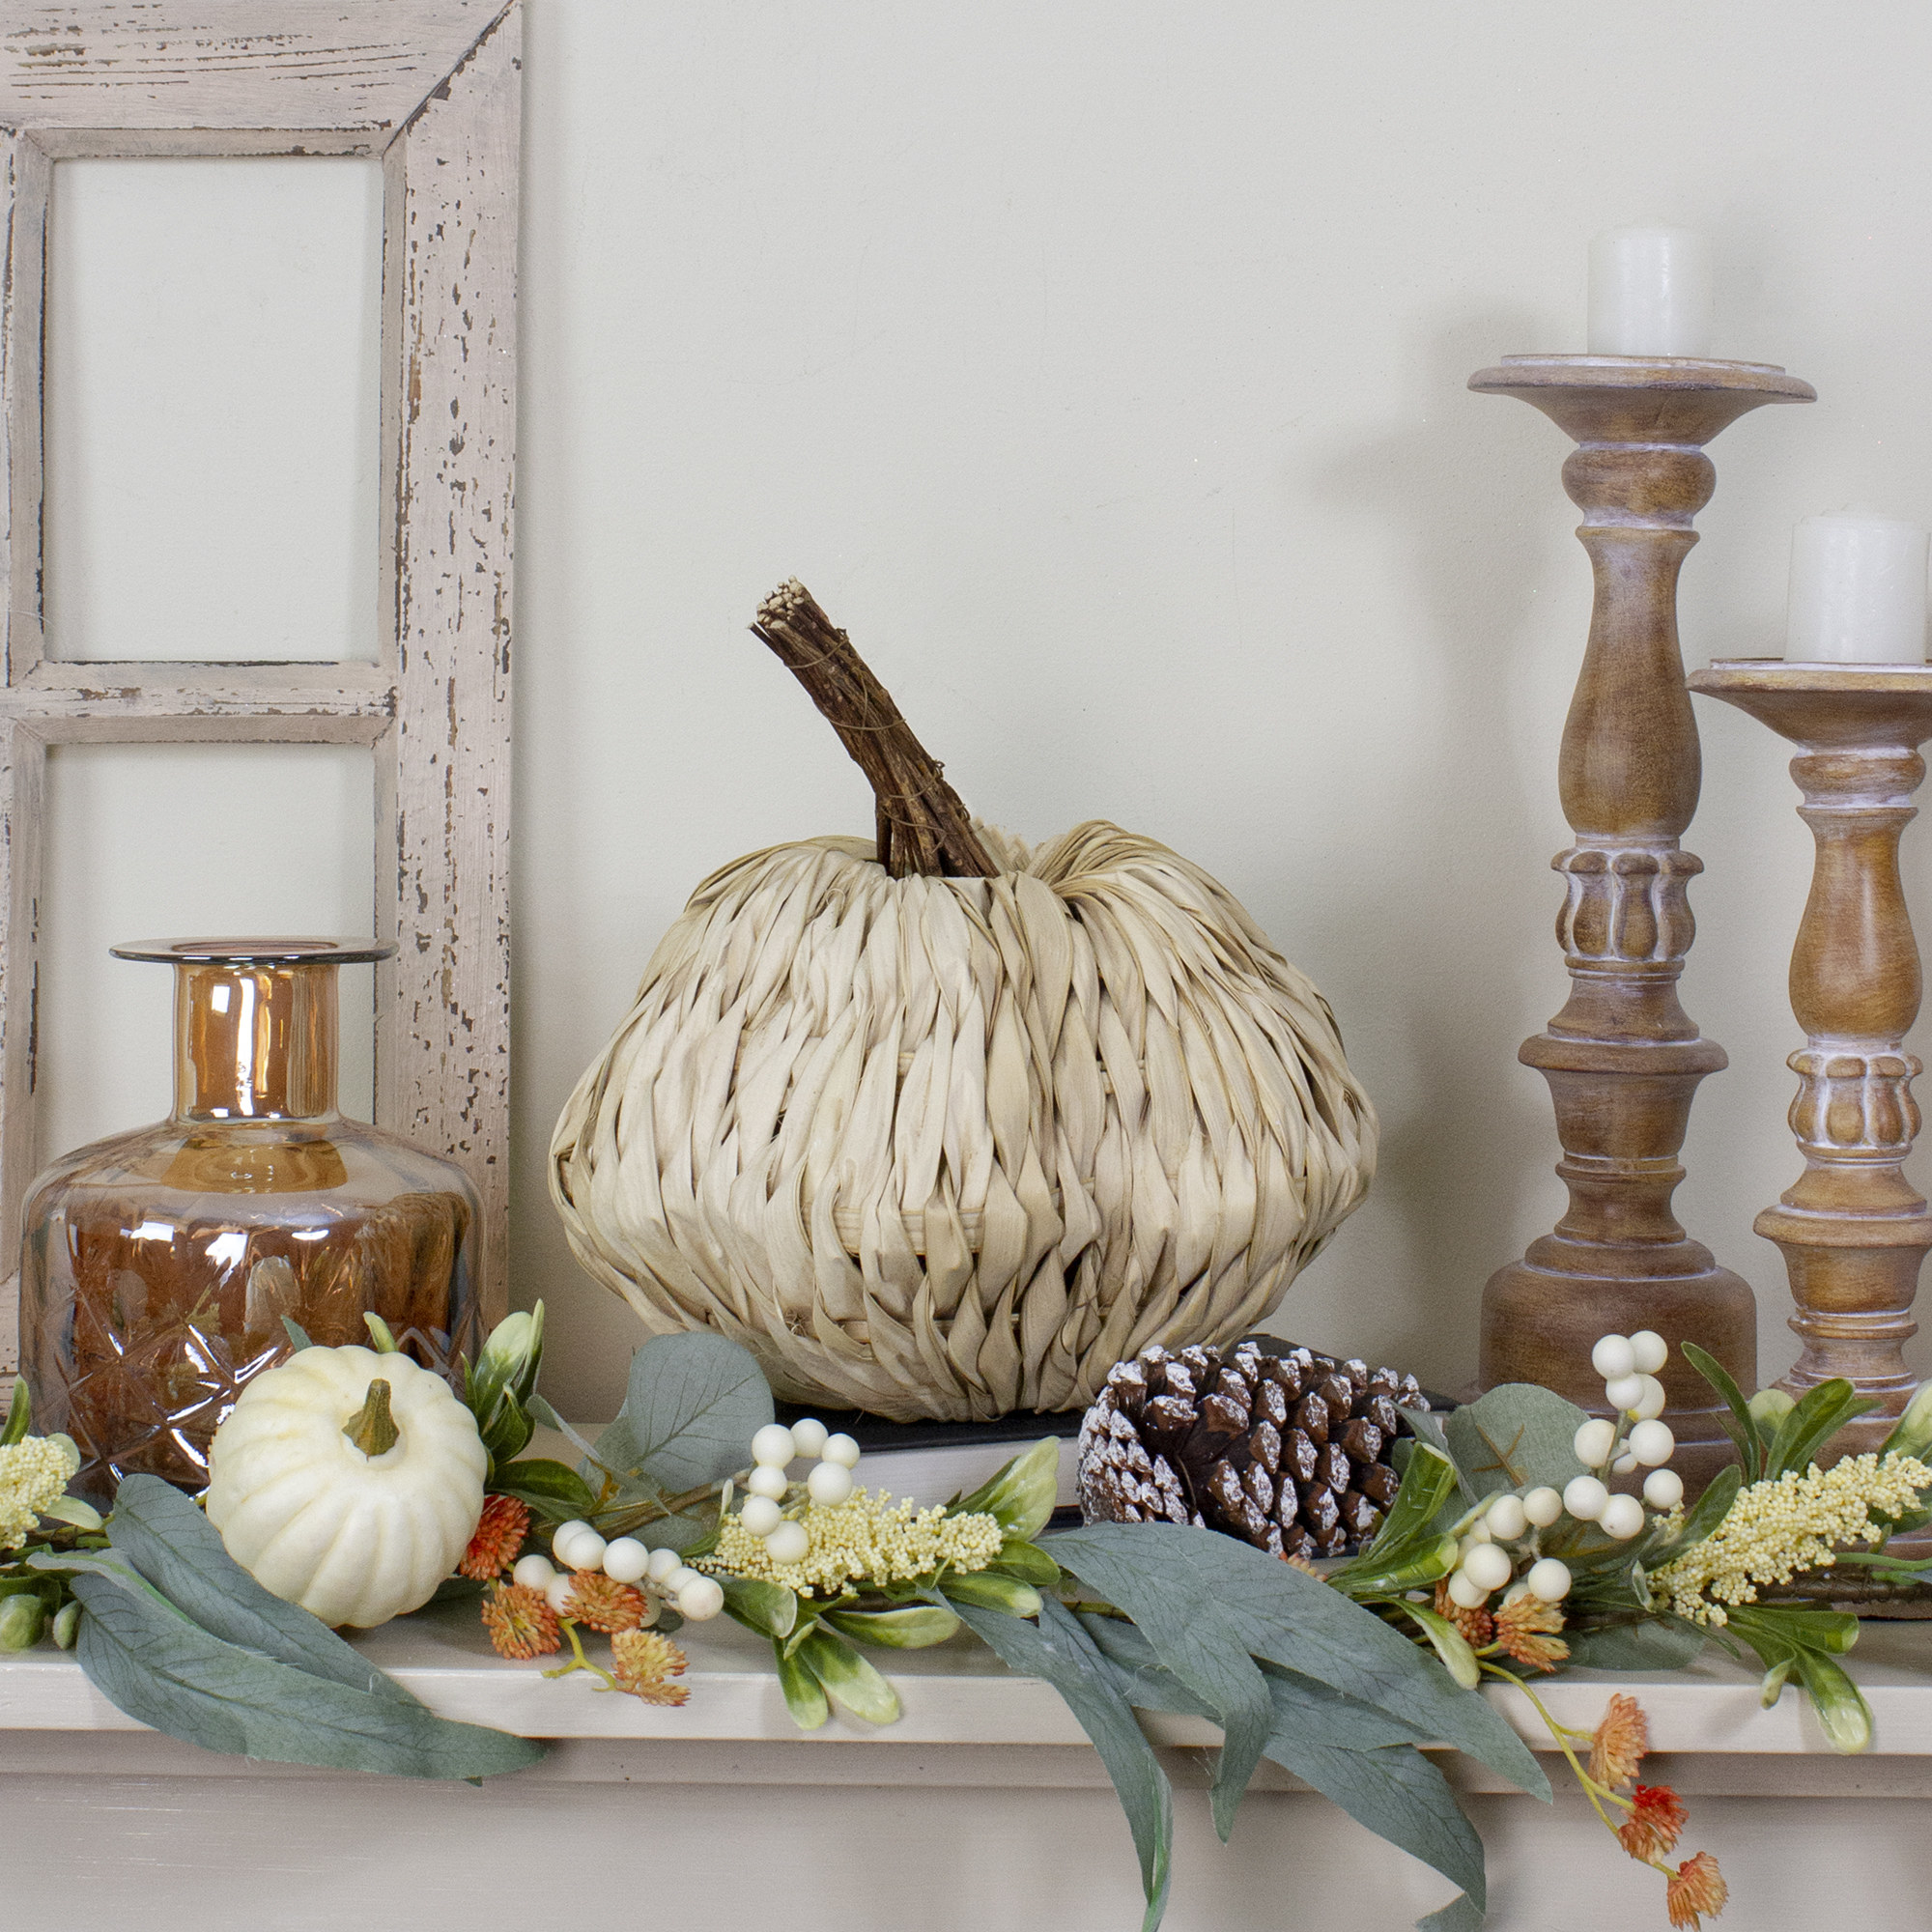 The woven pumpkin displayed on a mantle